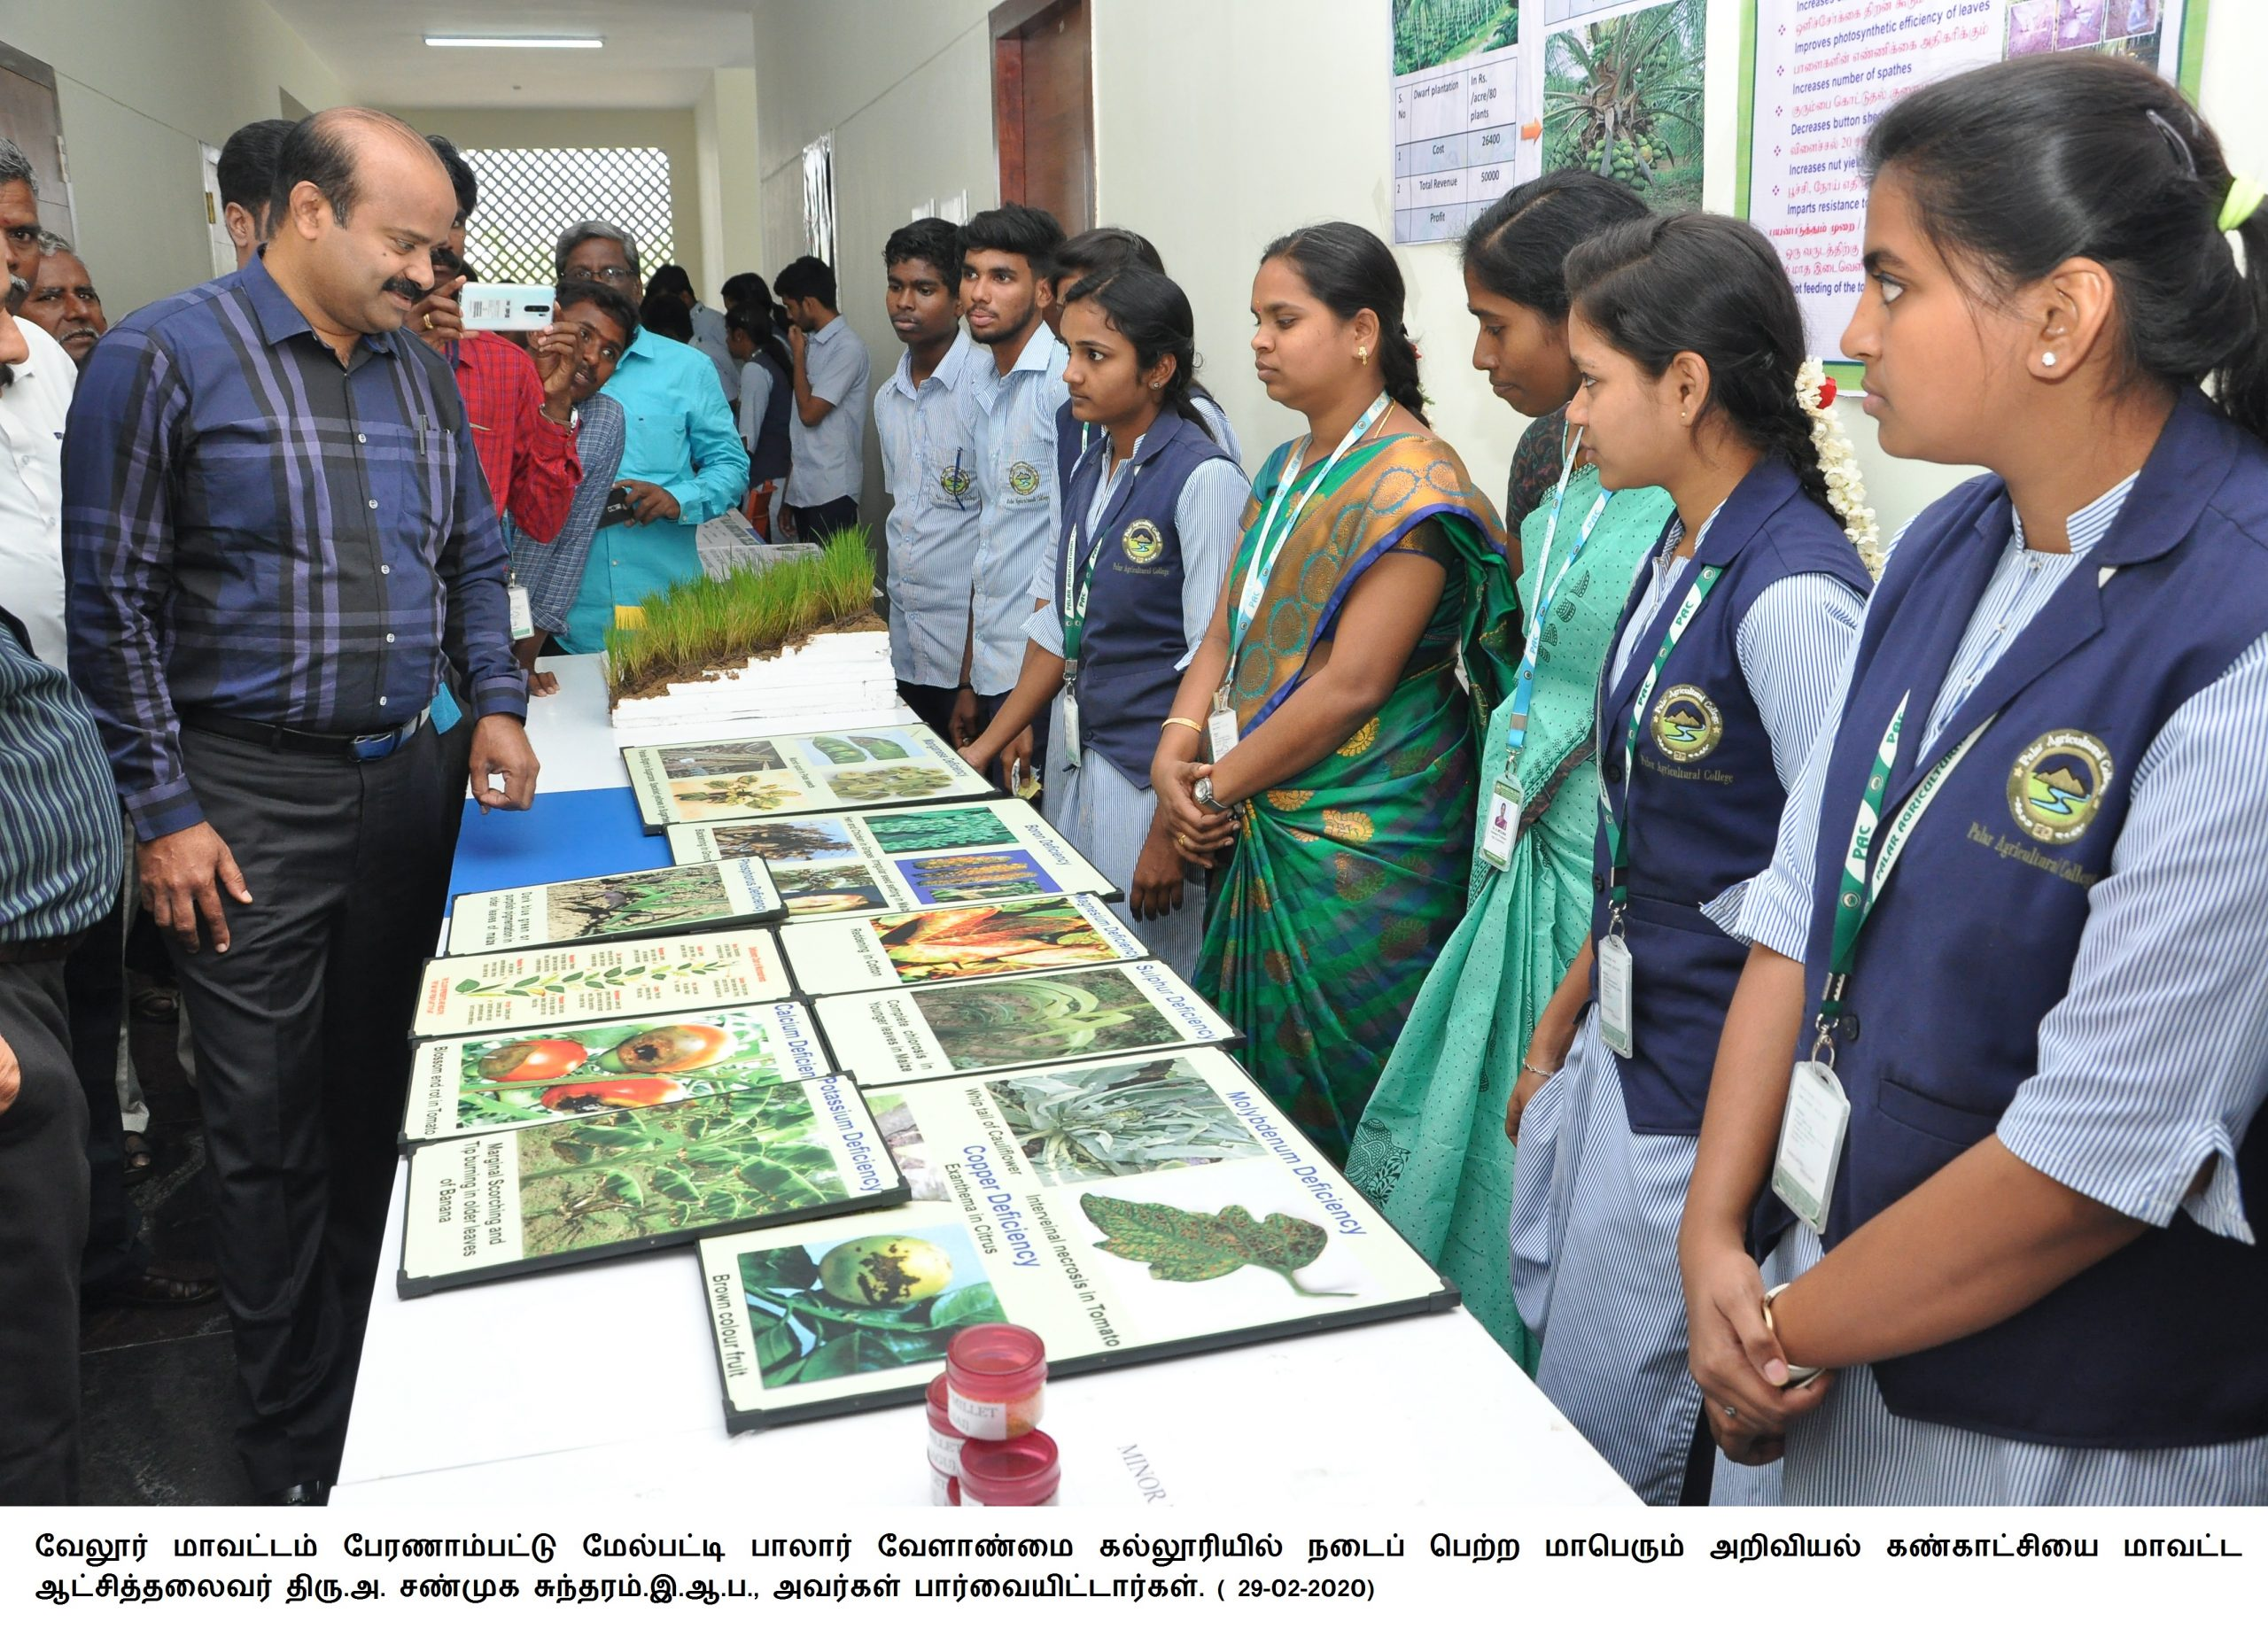 District Collector Visited Science Exhibition at Peranambut 29-02-2020